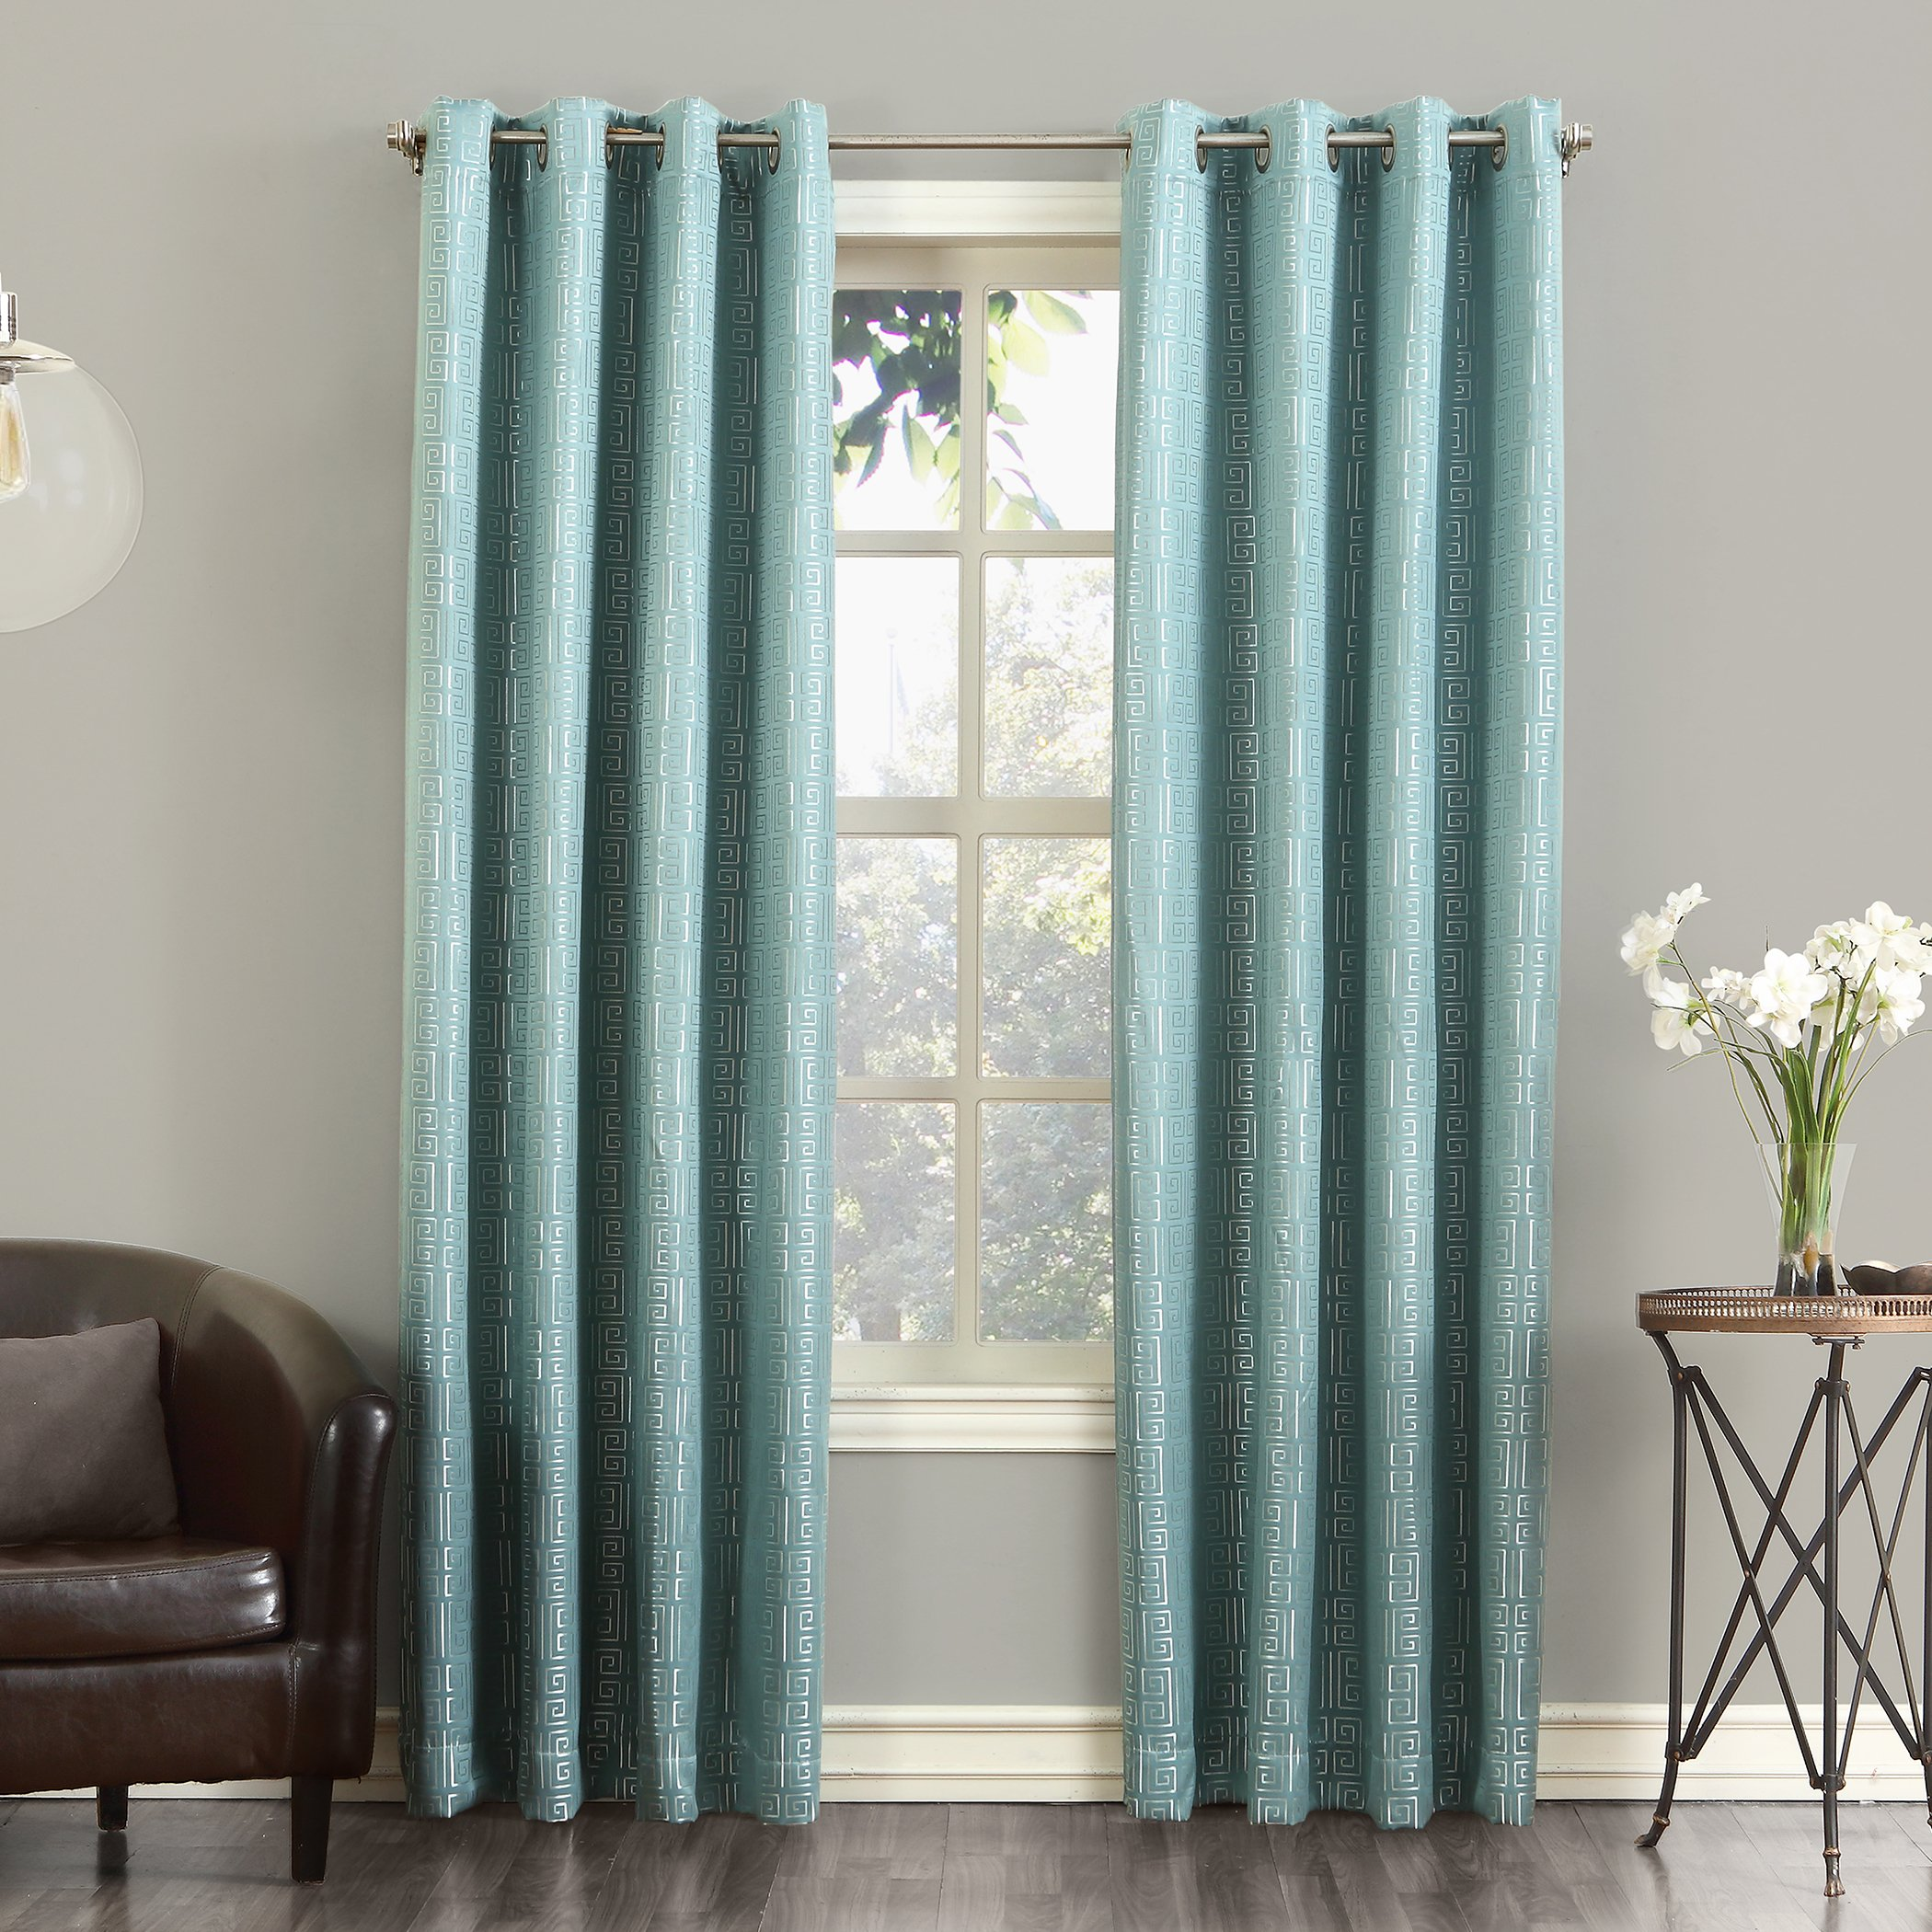 Sun Zero Theodore Blackout Lined Single Curtain Panel, 52'' x 63'', Spa Blue